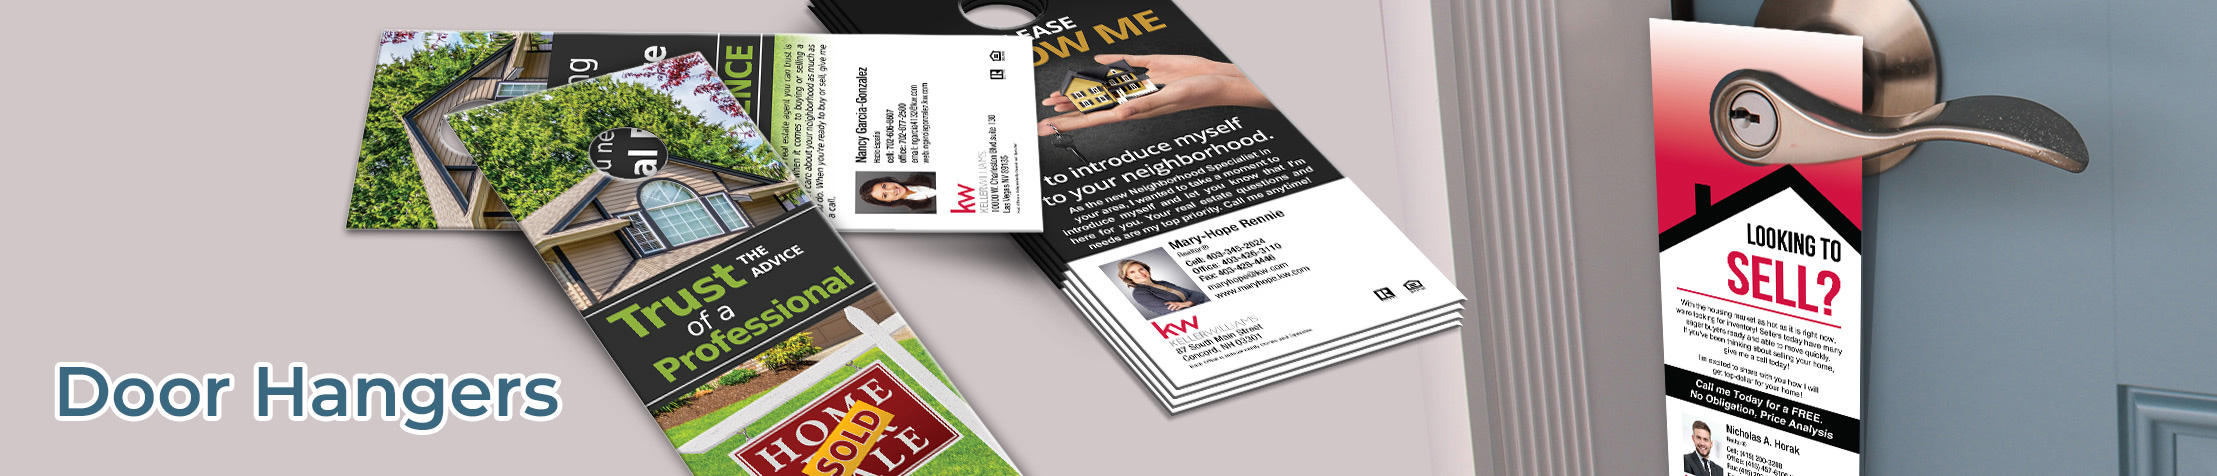 Keller Williams Real Estate Door Hangers - KW Approved Vendor Gloss Door Knockers for Realtors | BestPrintBuy.com